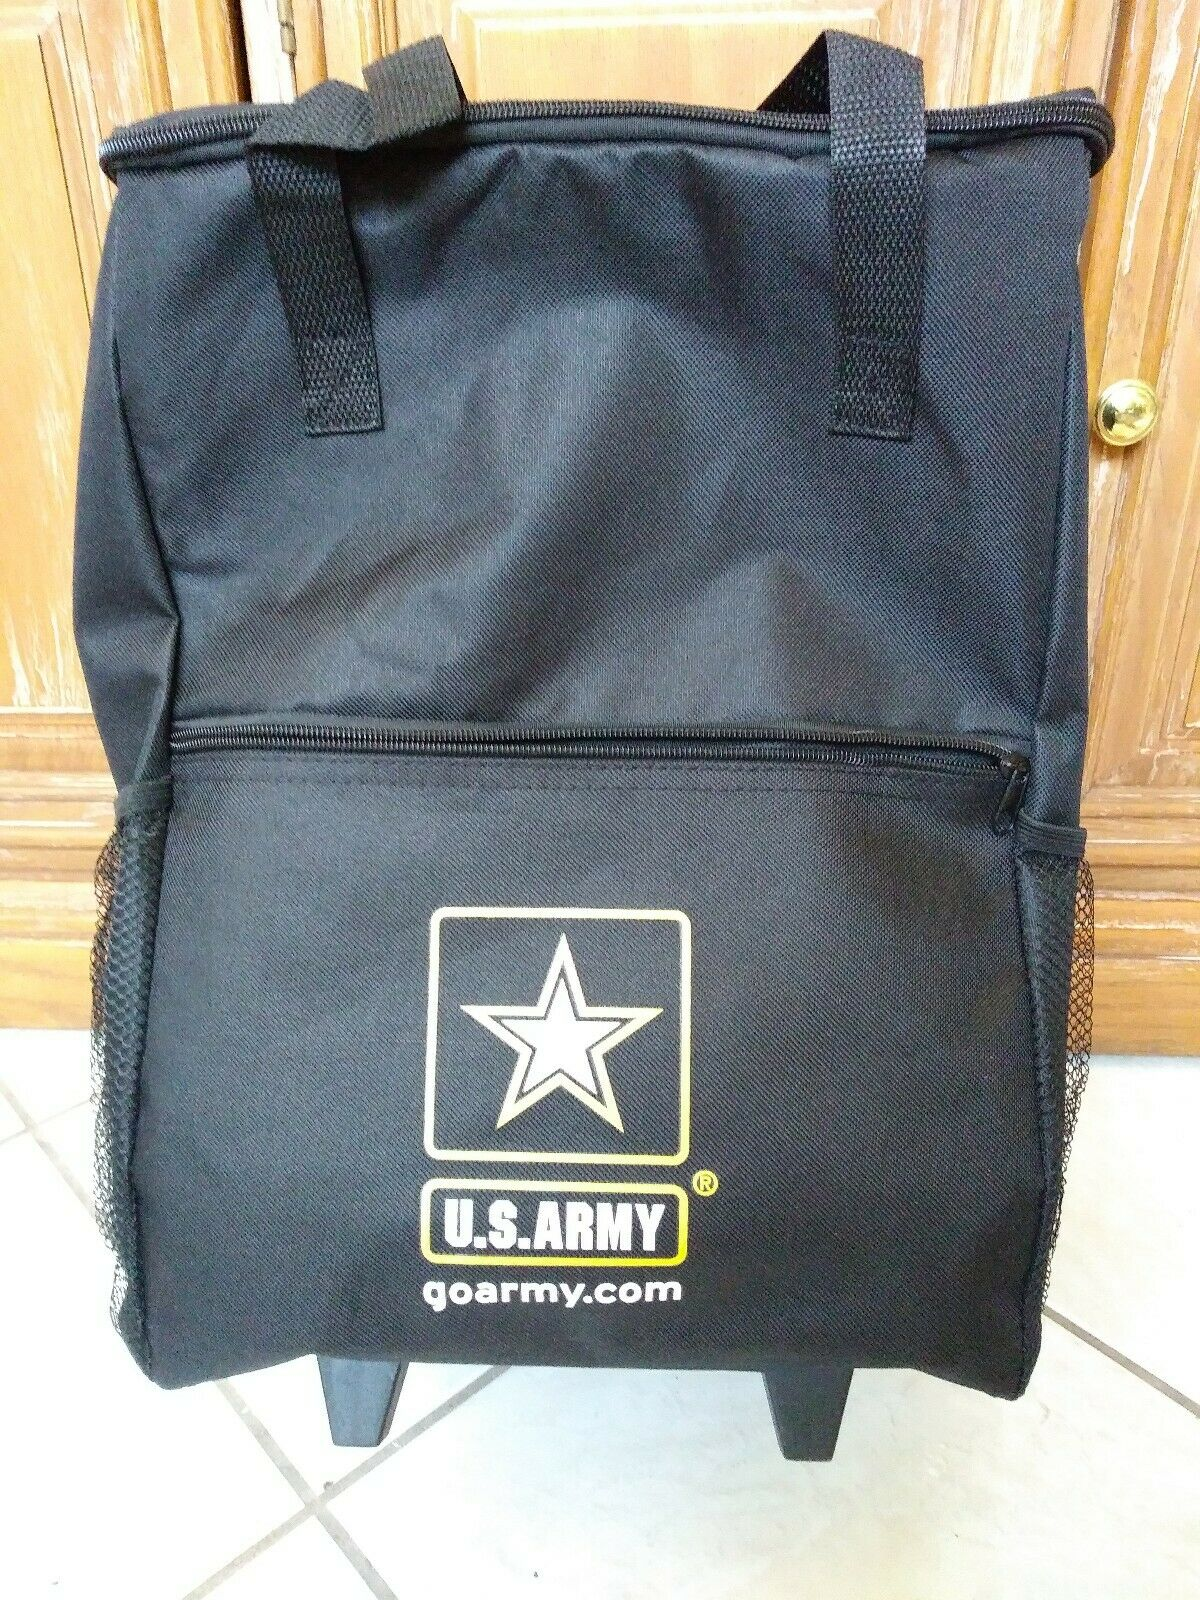 United States  Army U.S. Army Military Retractable Handled Rolling Cooler Bag  novelty items